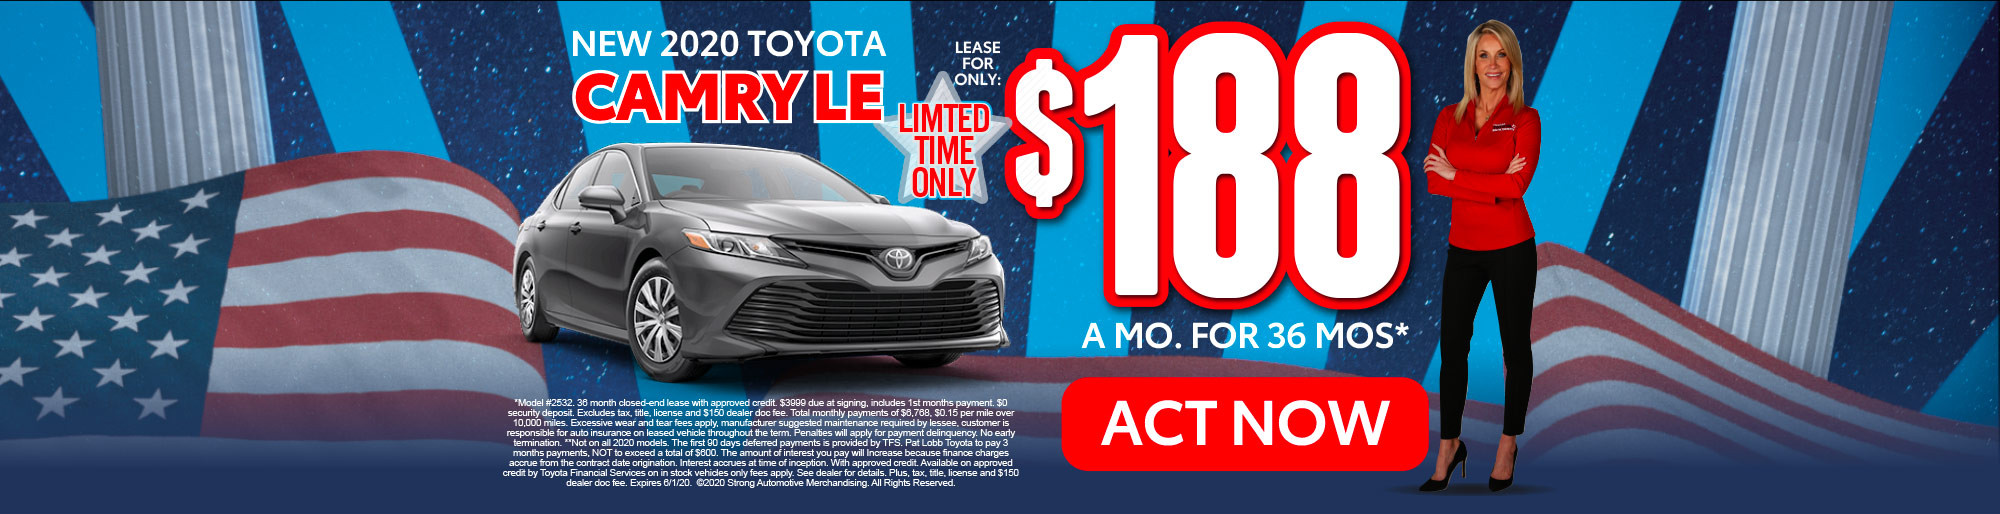 lease a new Camry for only $188/mo* act now